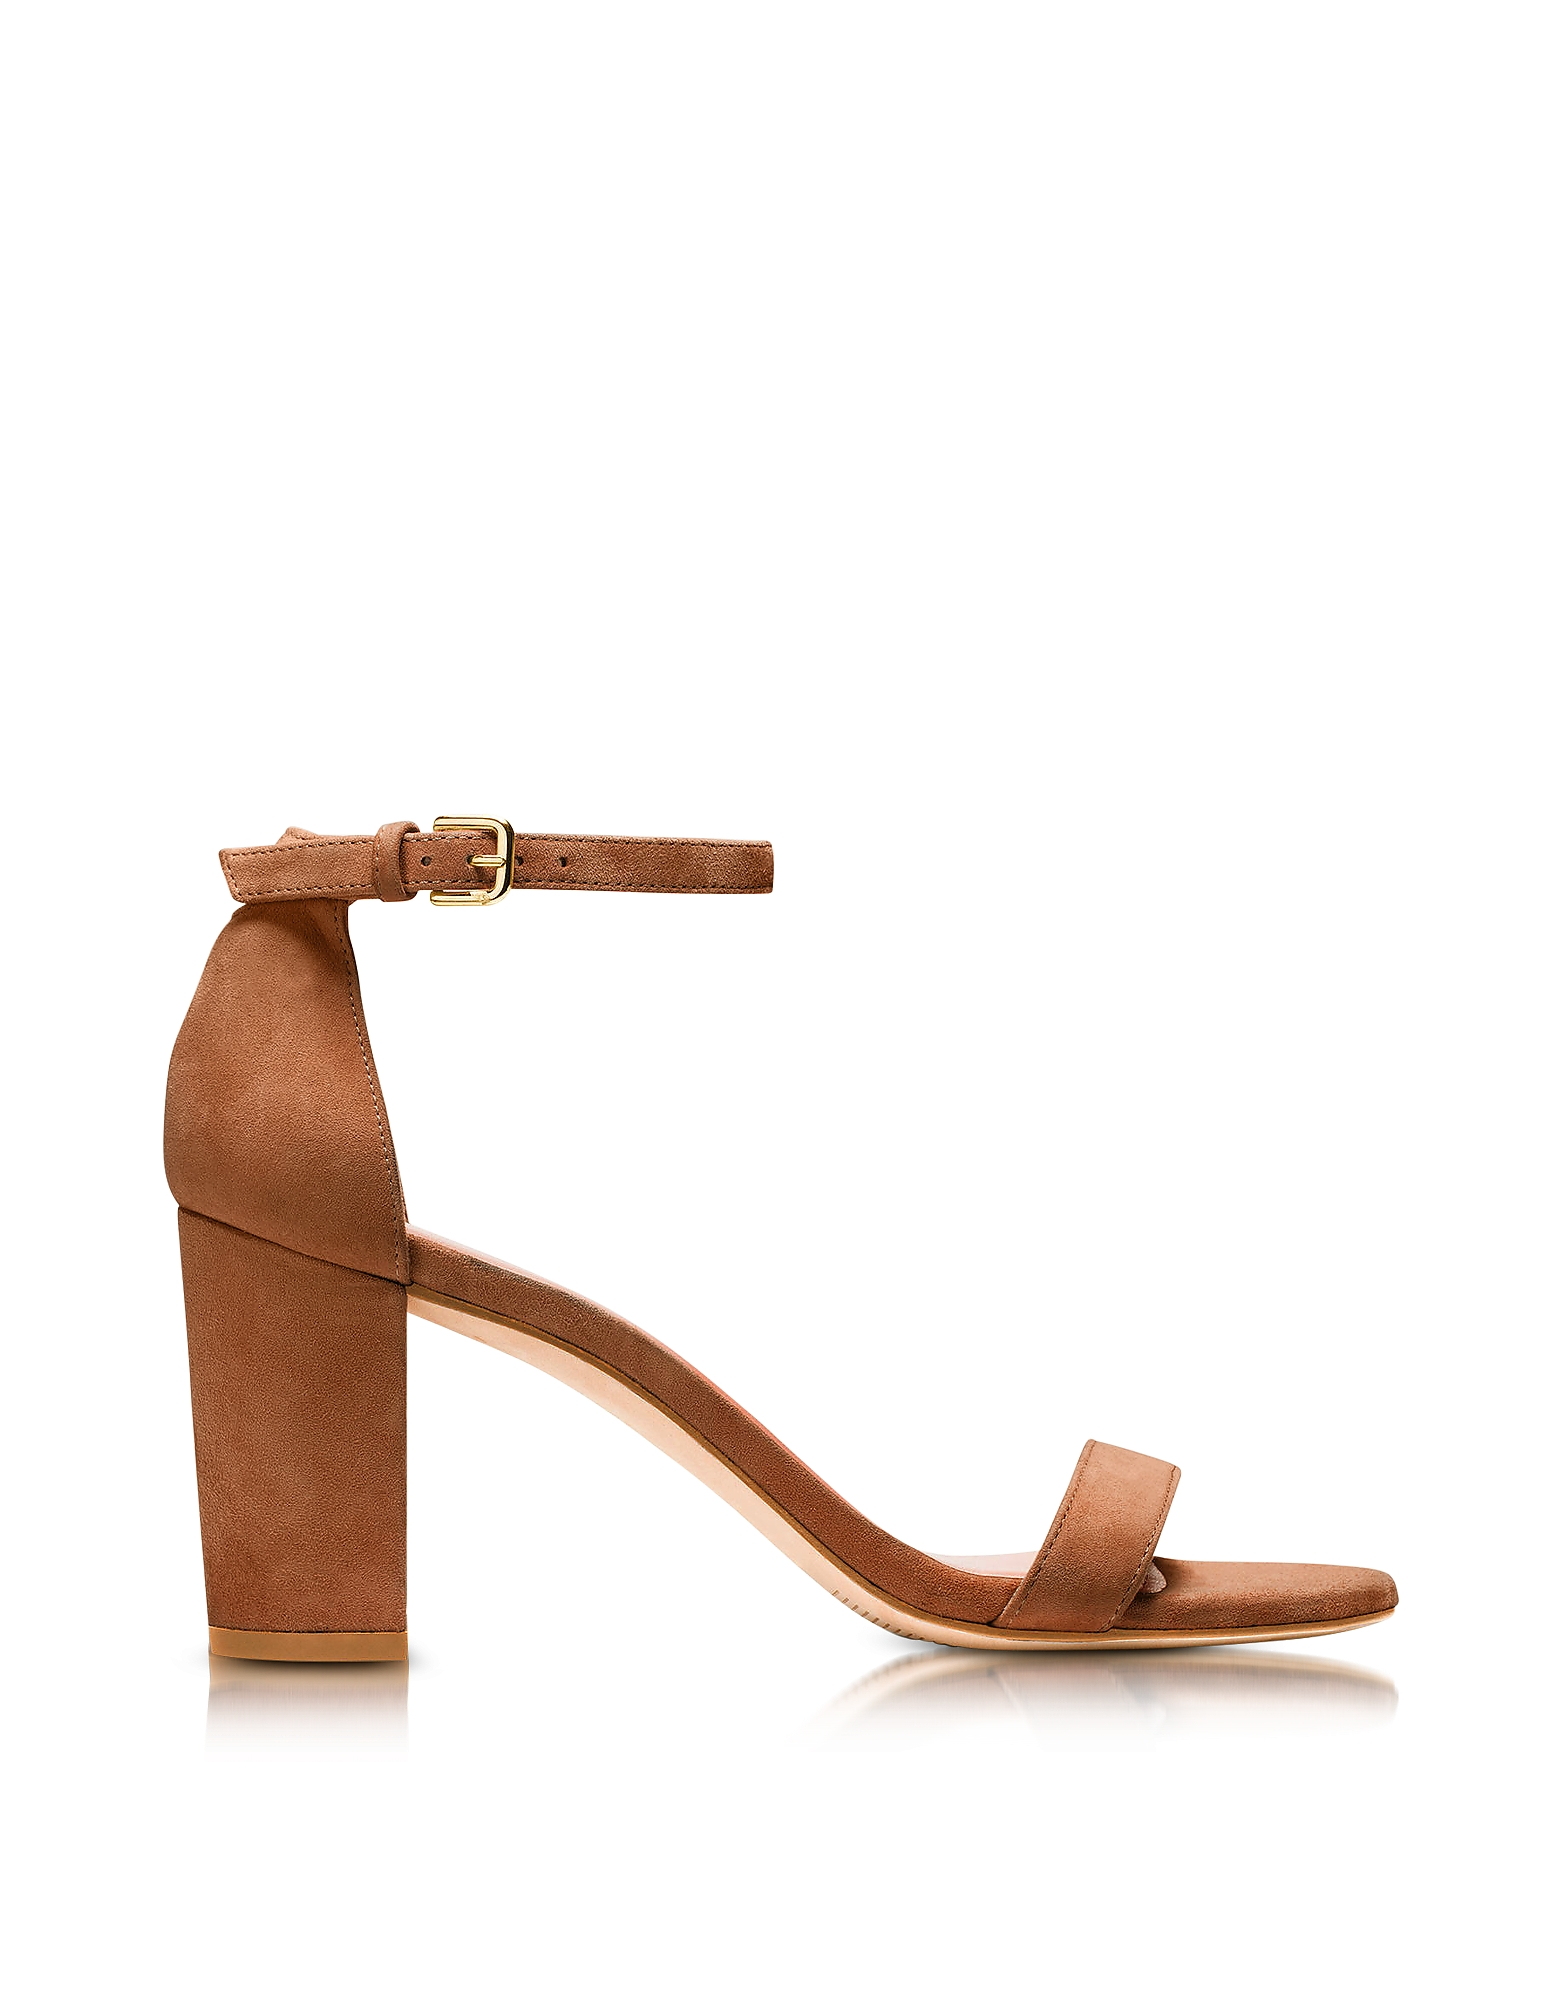 Stuart Weitzman Shoes, Nearlynude Saddle Brown Suede Heel Sandals